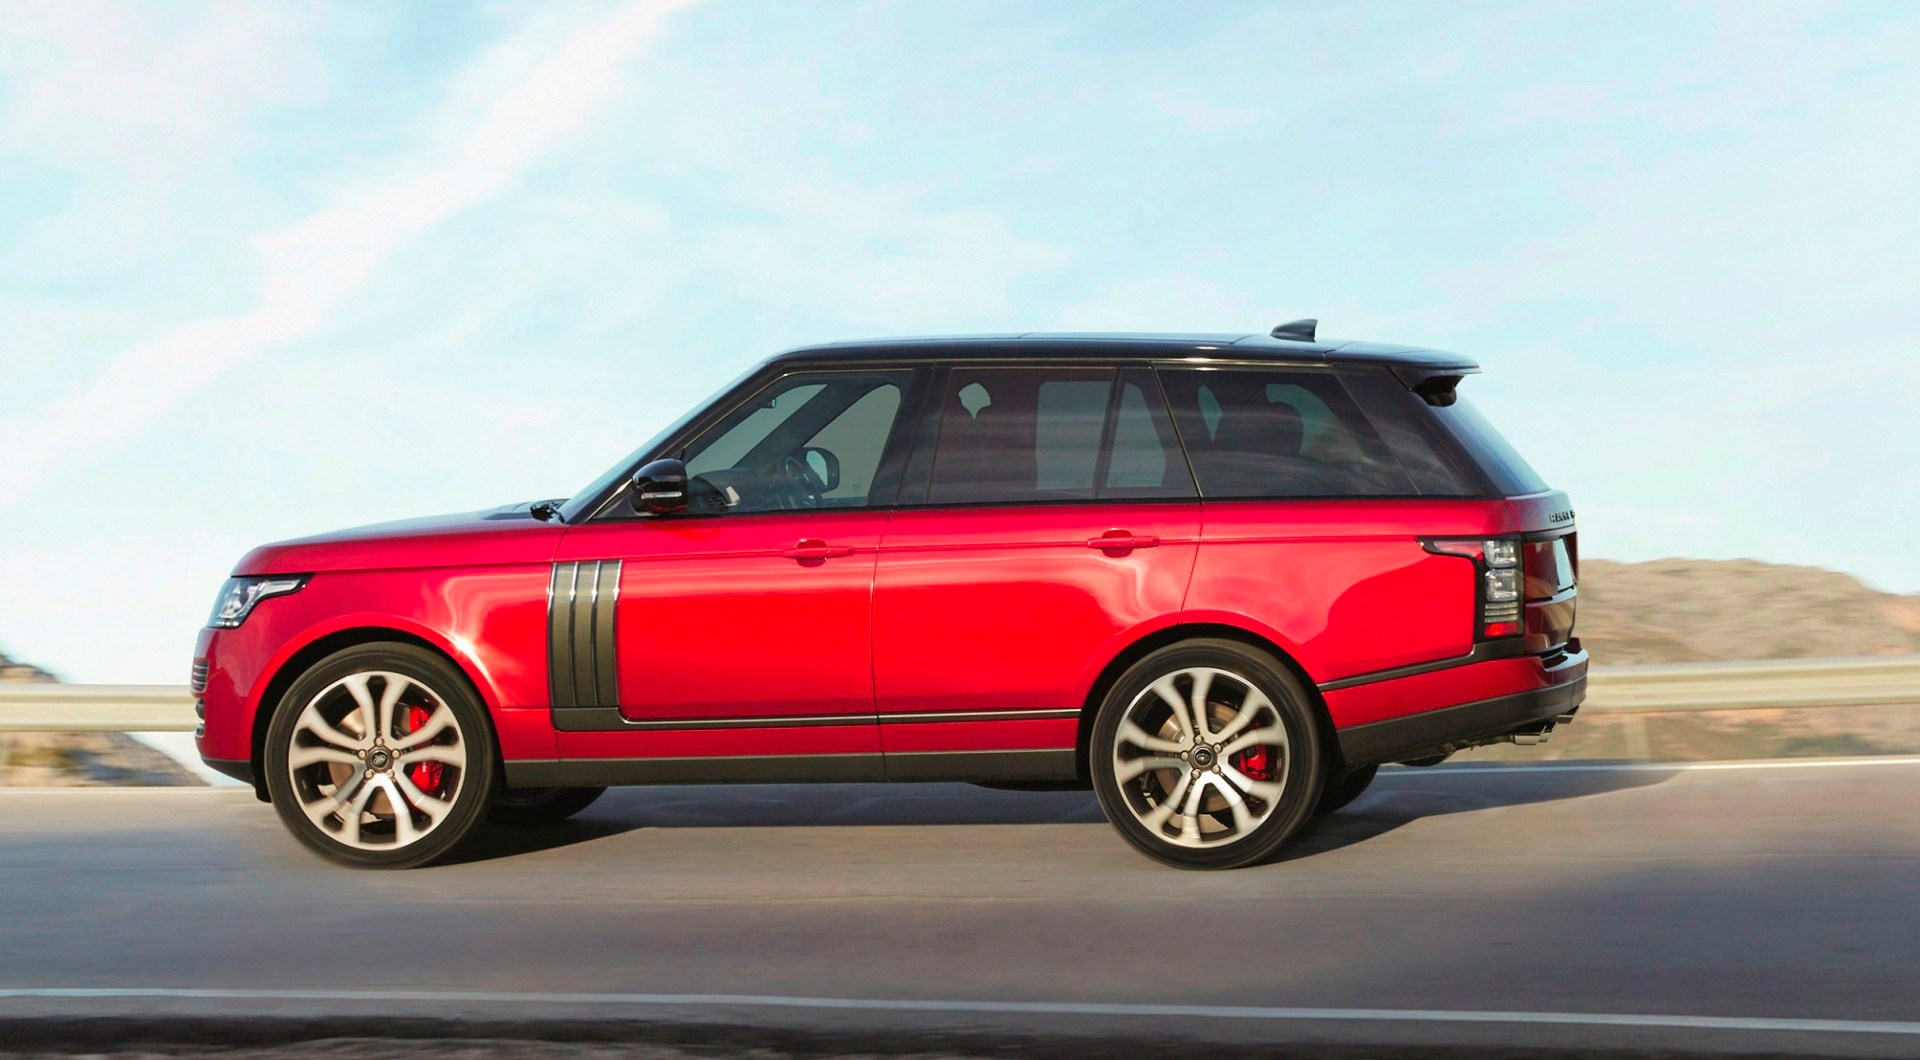 2017 Range Rover Gets Extensive Tech, Engine Updates Thumbnail